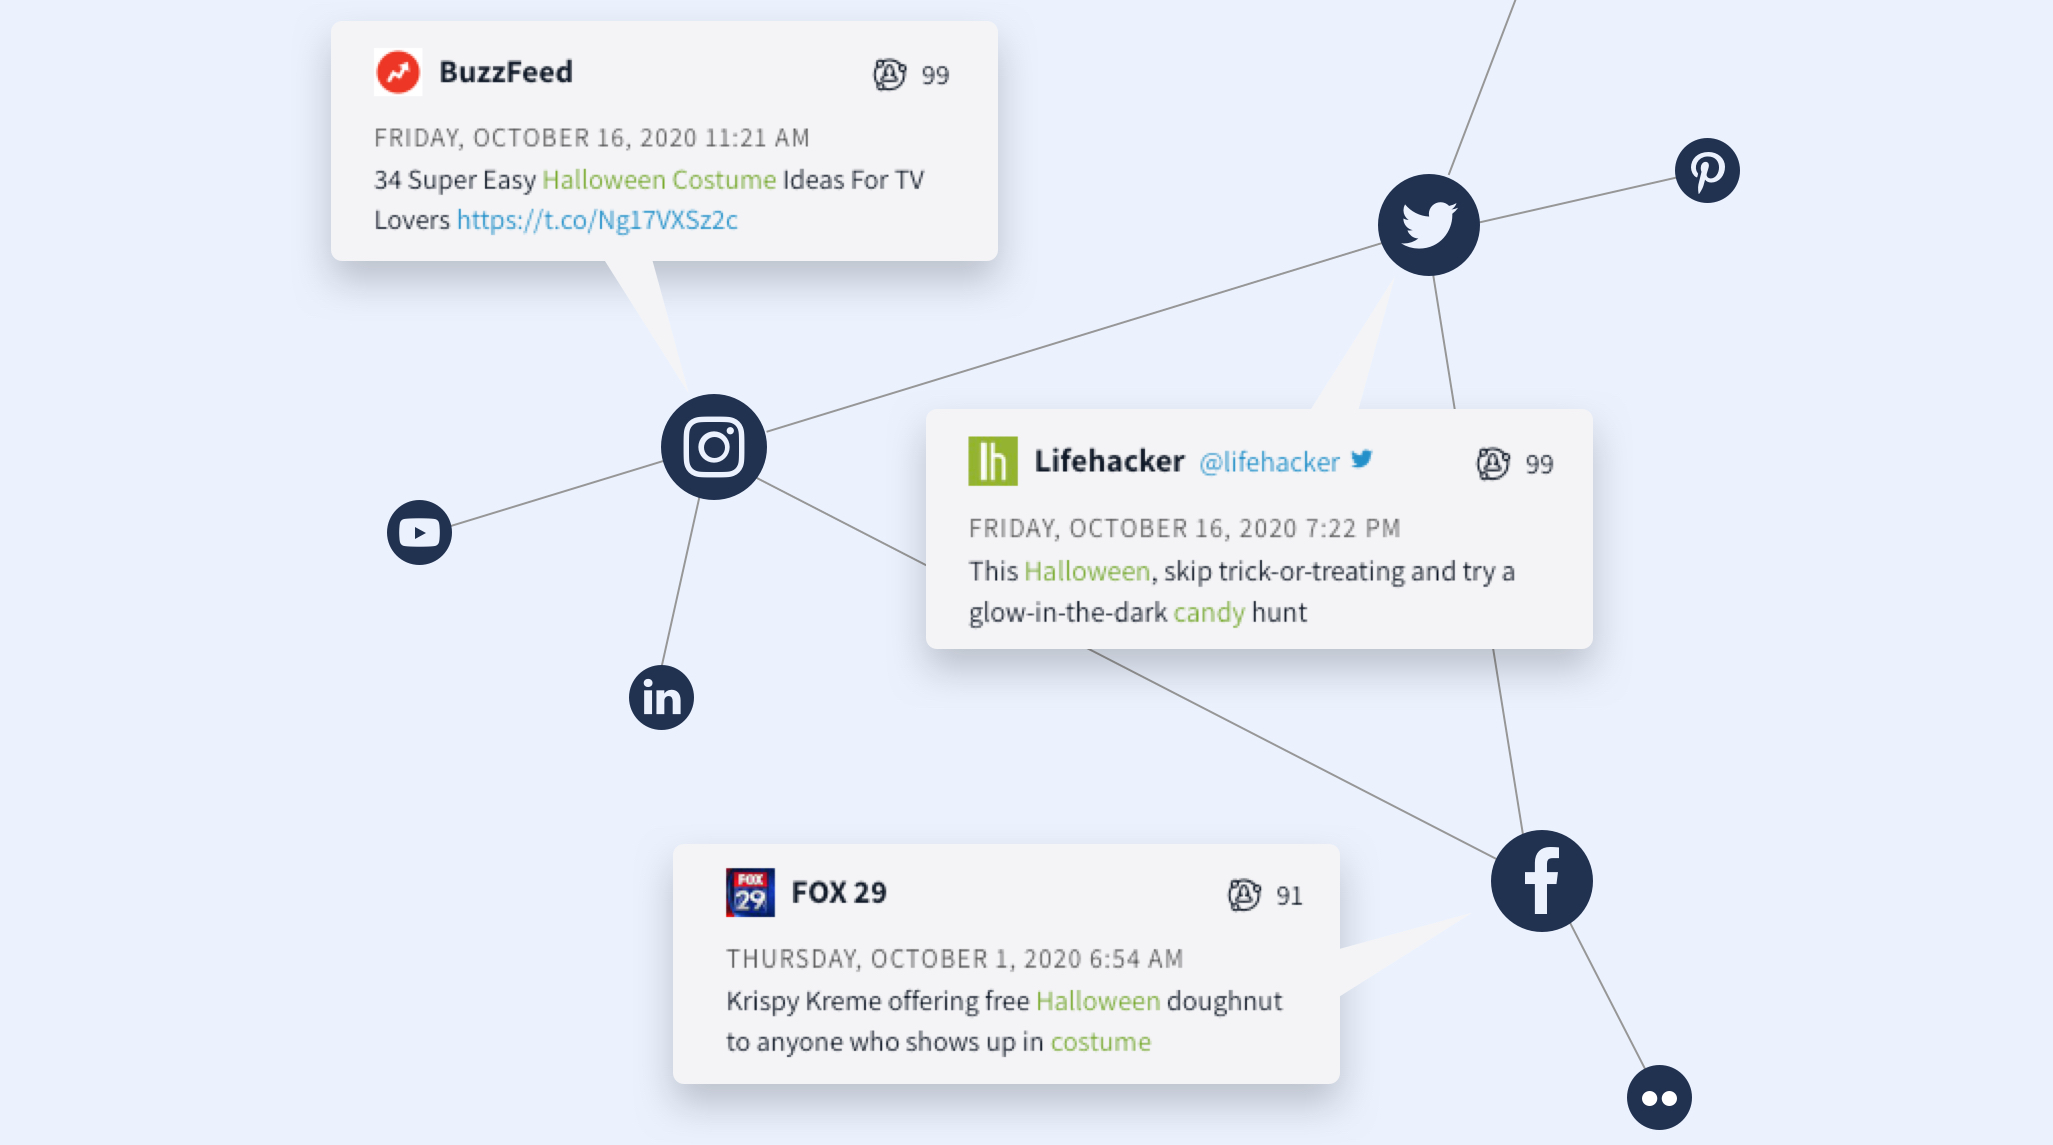 "Nuvi's social listening and monitoring solution gathers data from all social platforms and across many online sources. This image shows all the social platforms connected by lines. Three social messages are displayed. One is from BuzzFeed on Instagram that reads ""34 Super Easy Halloween Costume Ideas for TV Lovers"". The next is a tweet by Lifehackers that reads ""This Halloween, skip trick-or-treating and try a glow-in-the-dark candy hunt"". The next is a post from Facebook by FOX 29 that reads, ""Krispy Kreme offering free Halloween donuts to anyone who shows up in costume."""